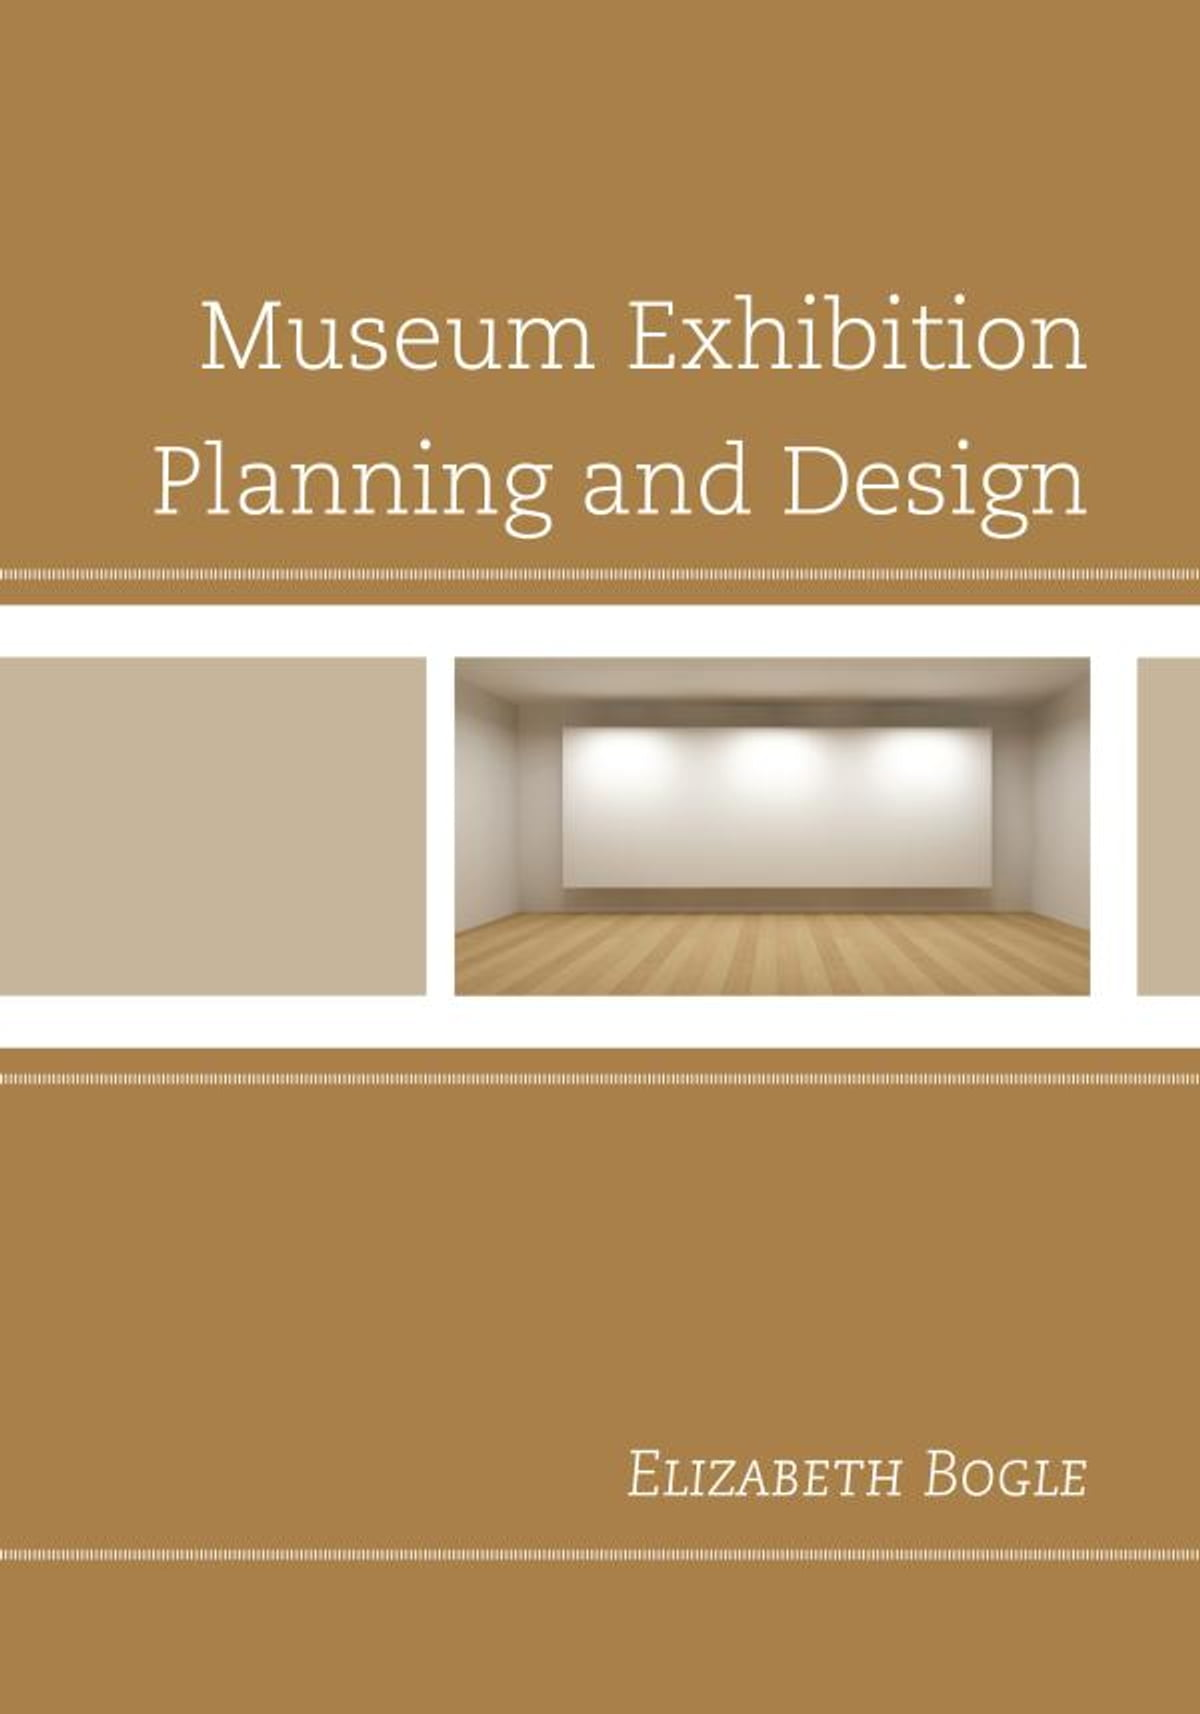 Museum Exhibition Planning And Design Ebook By Elizabeth Bogle 9780759122314 Rakuten Kobo United States